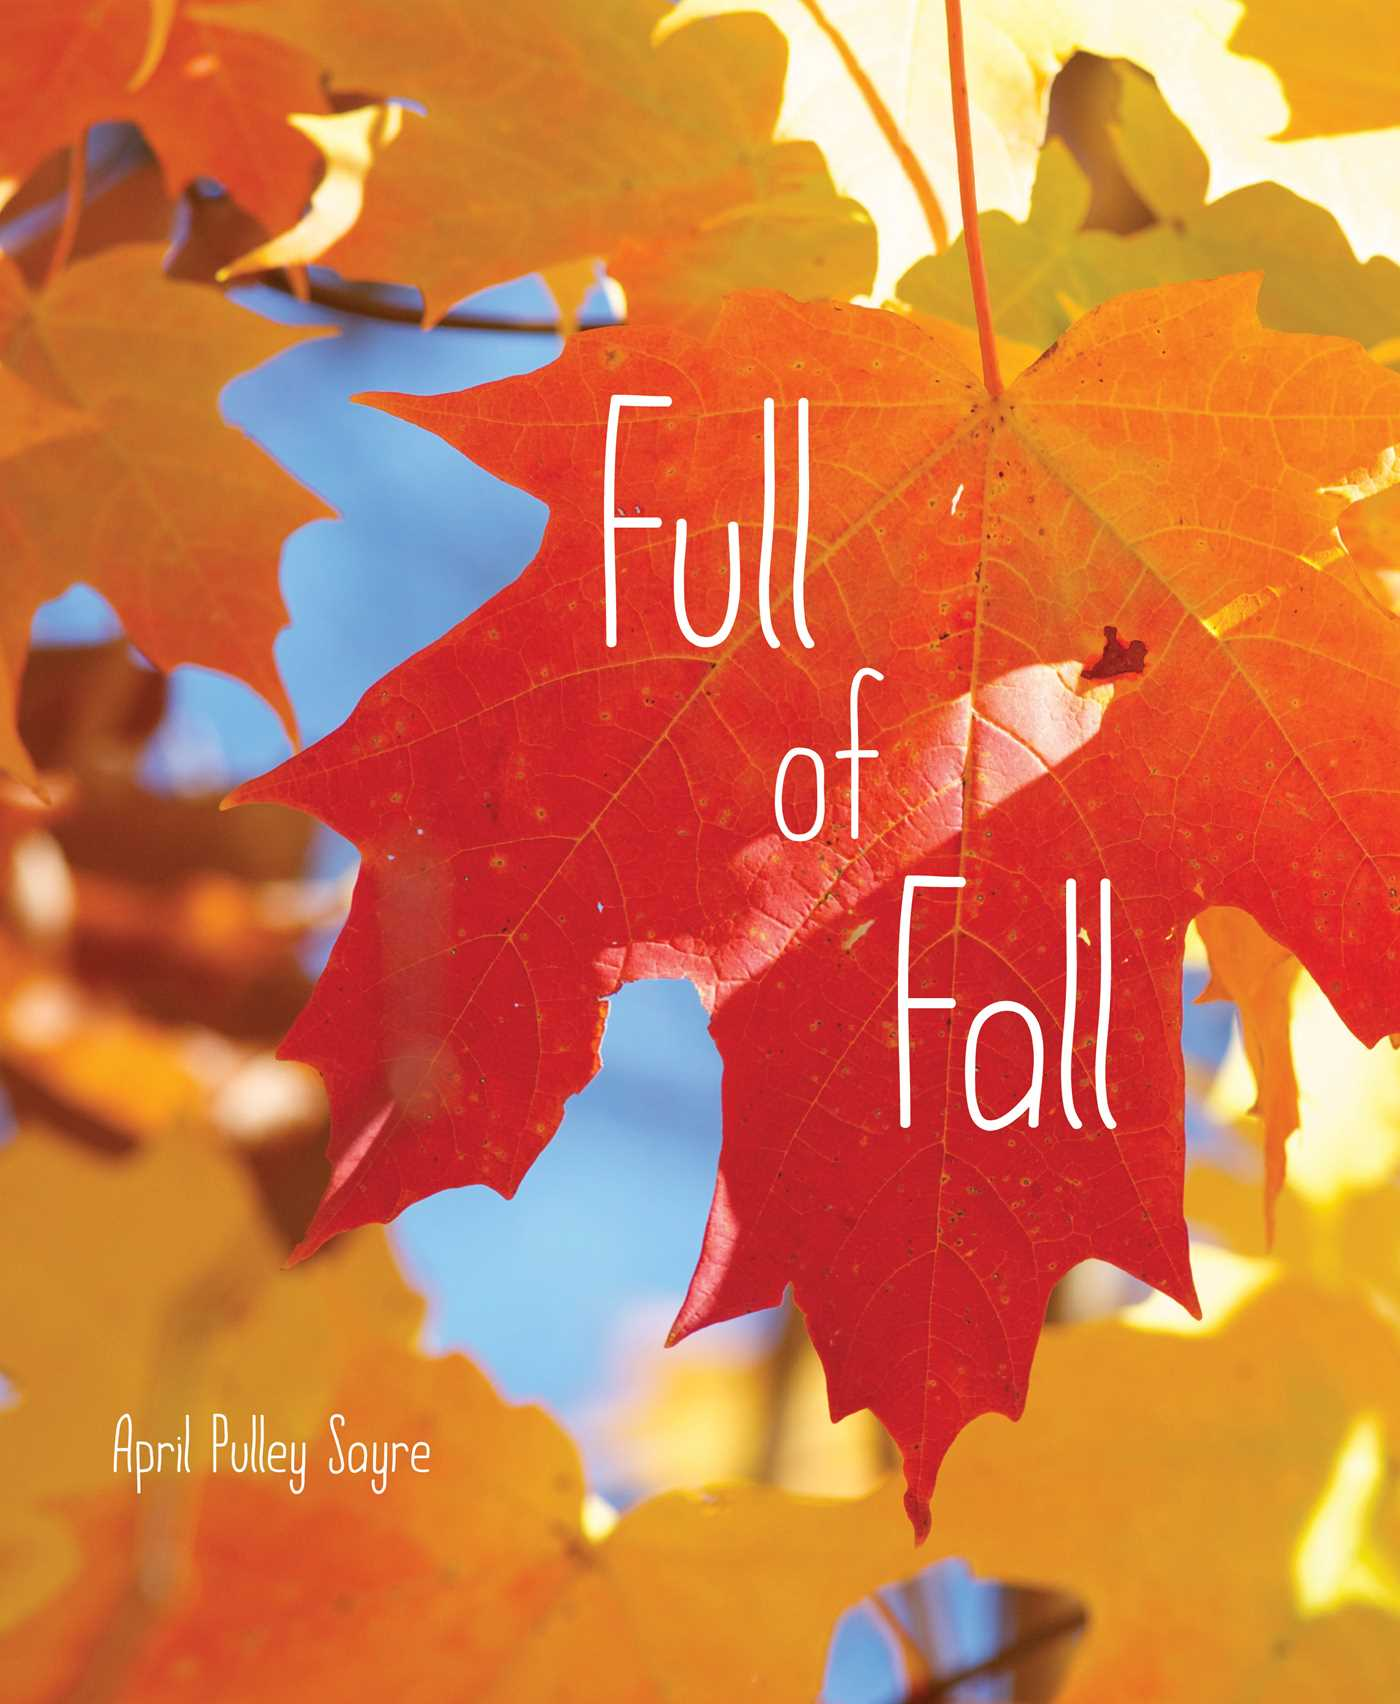 Full of fall 9781481479844 hr